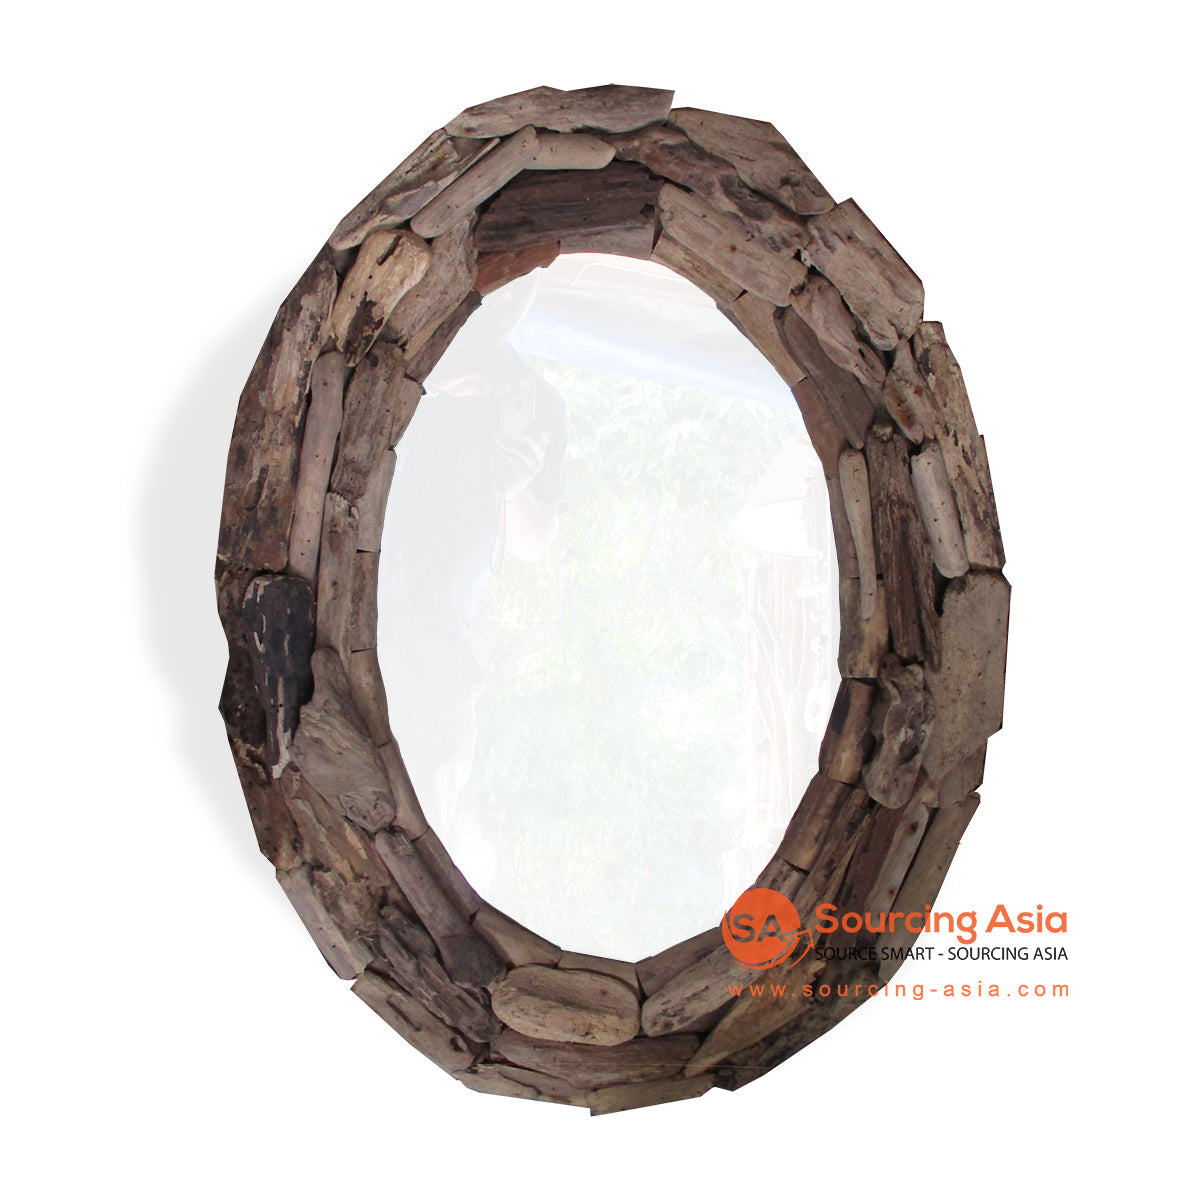 PJY022 DRIFTWOOD MIRROR DECORATION